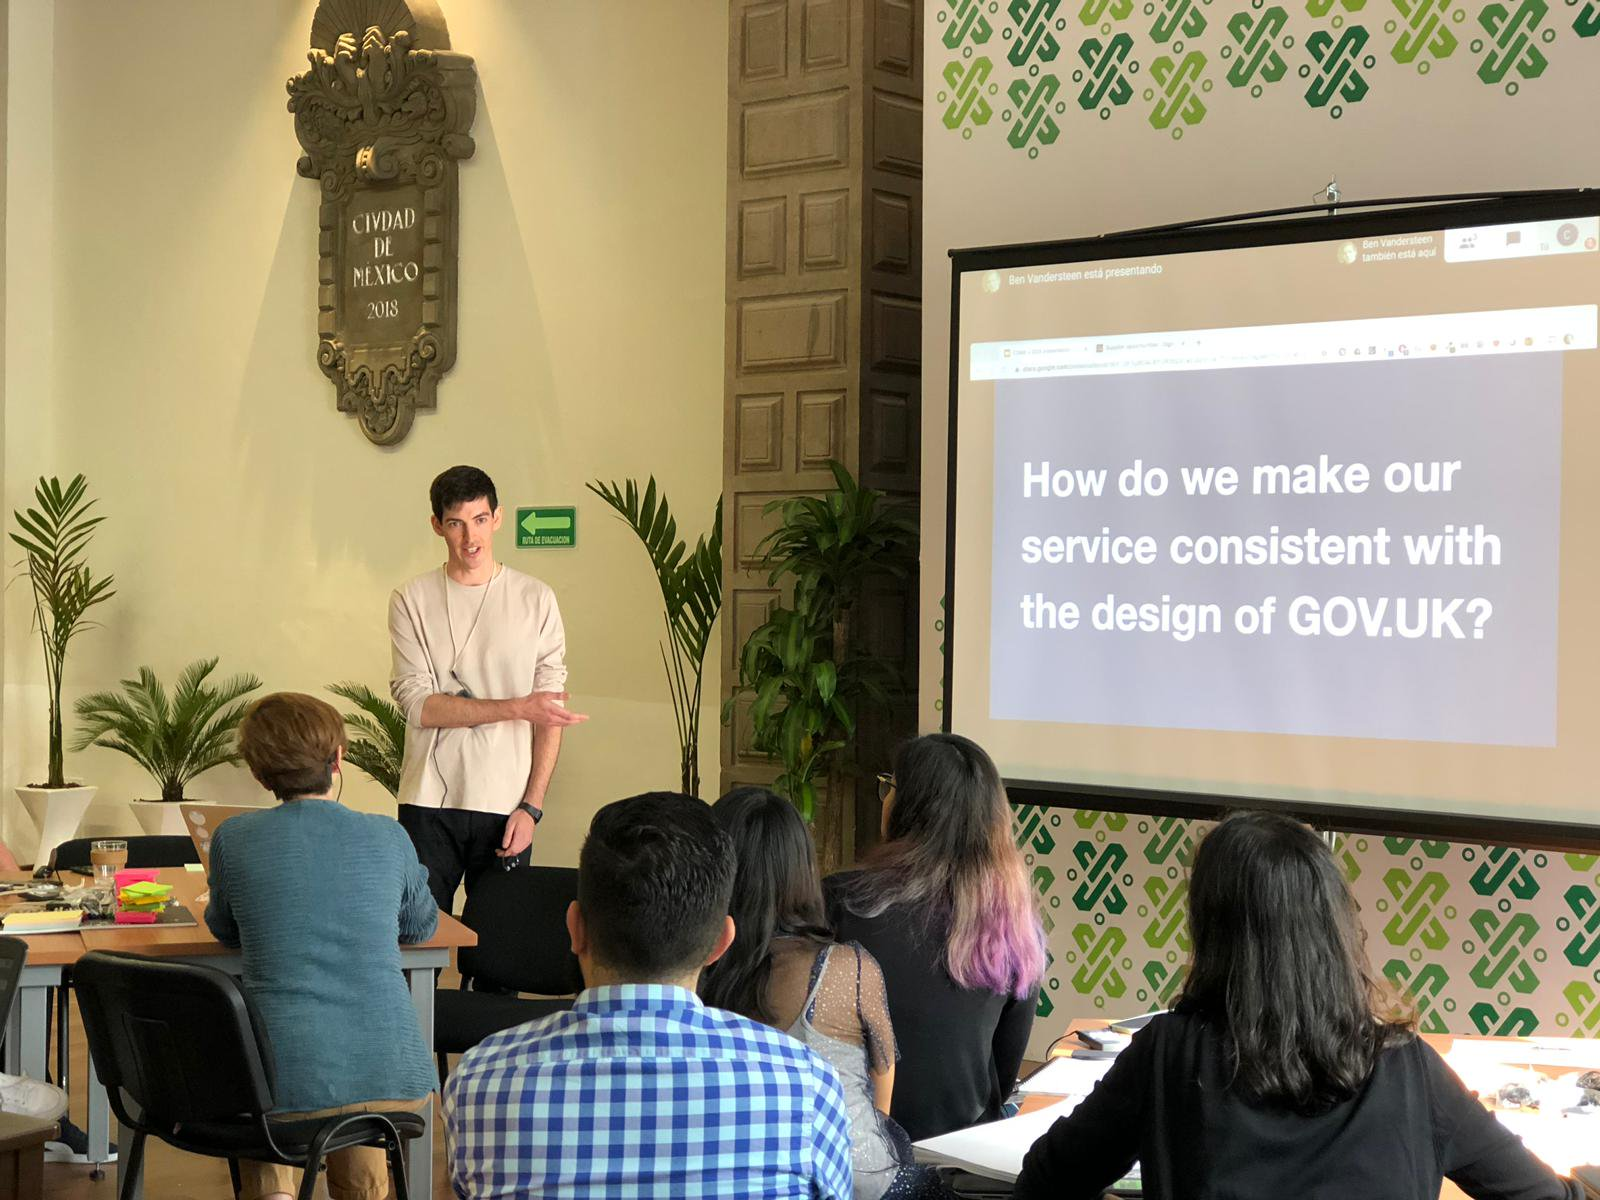 Laurence presenting about design in the UK government